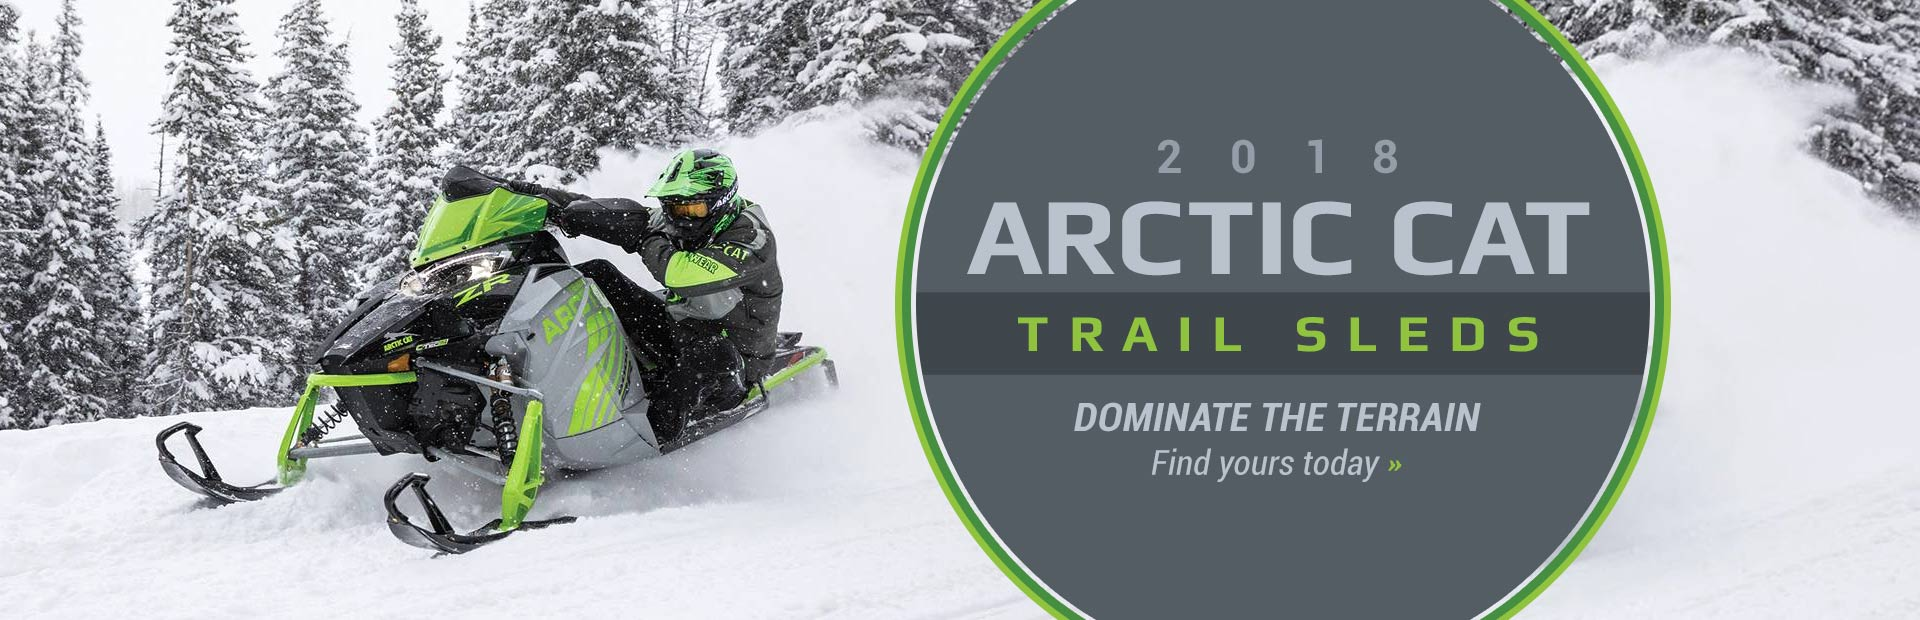 2018 Arctic Cat Trail Sleds: Click here to view the models.